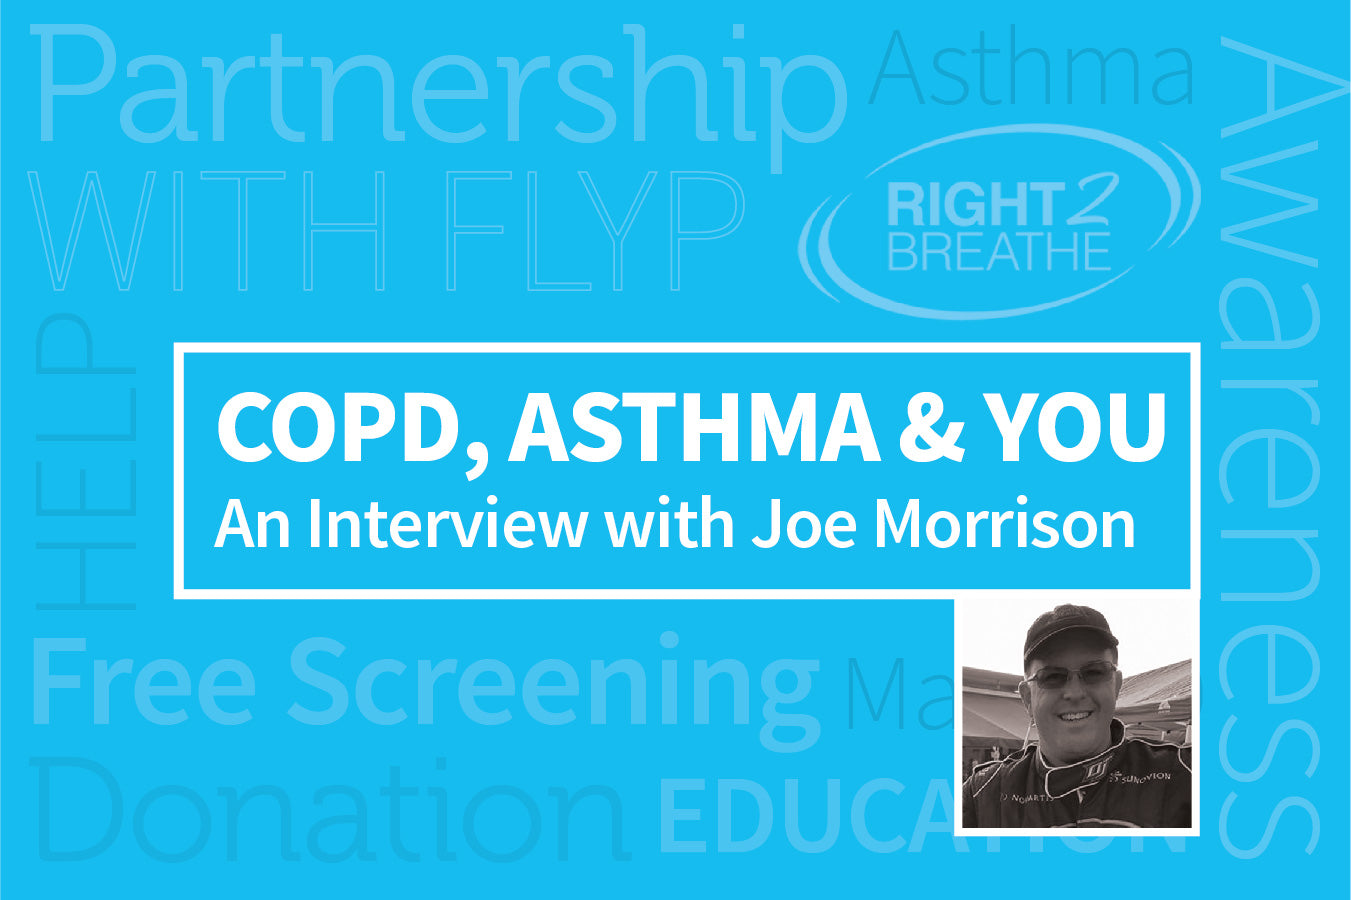 COPD, Asthma, and YOU: A Special Interview for Asthma Awareness Month